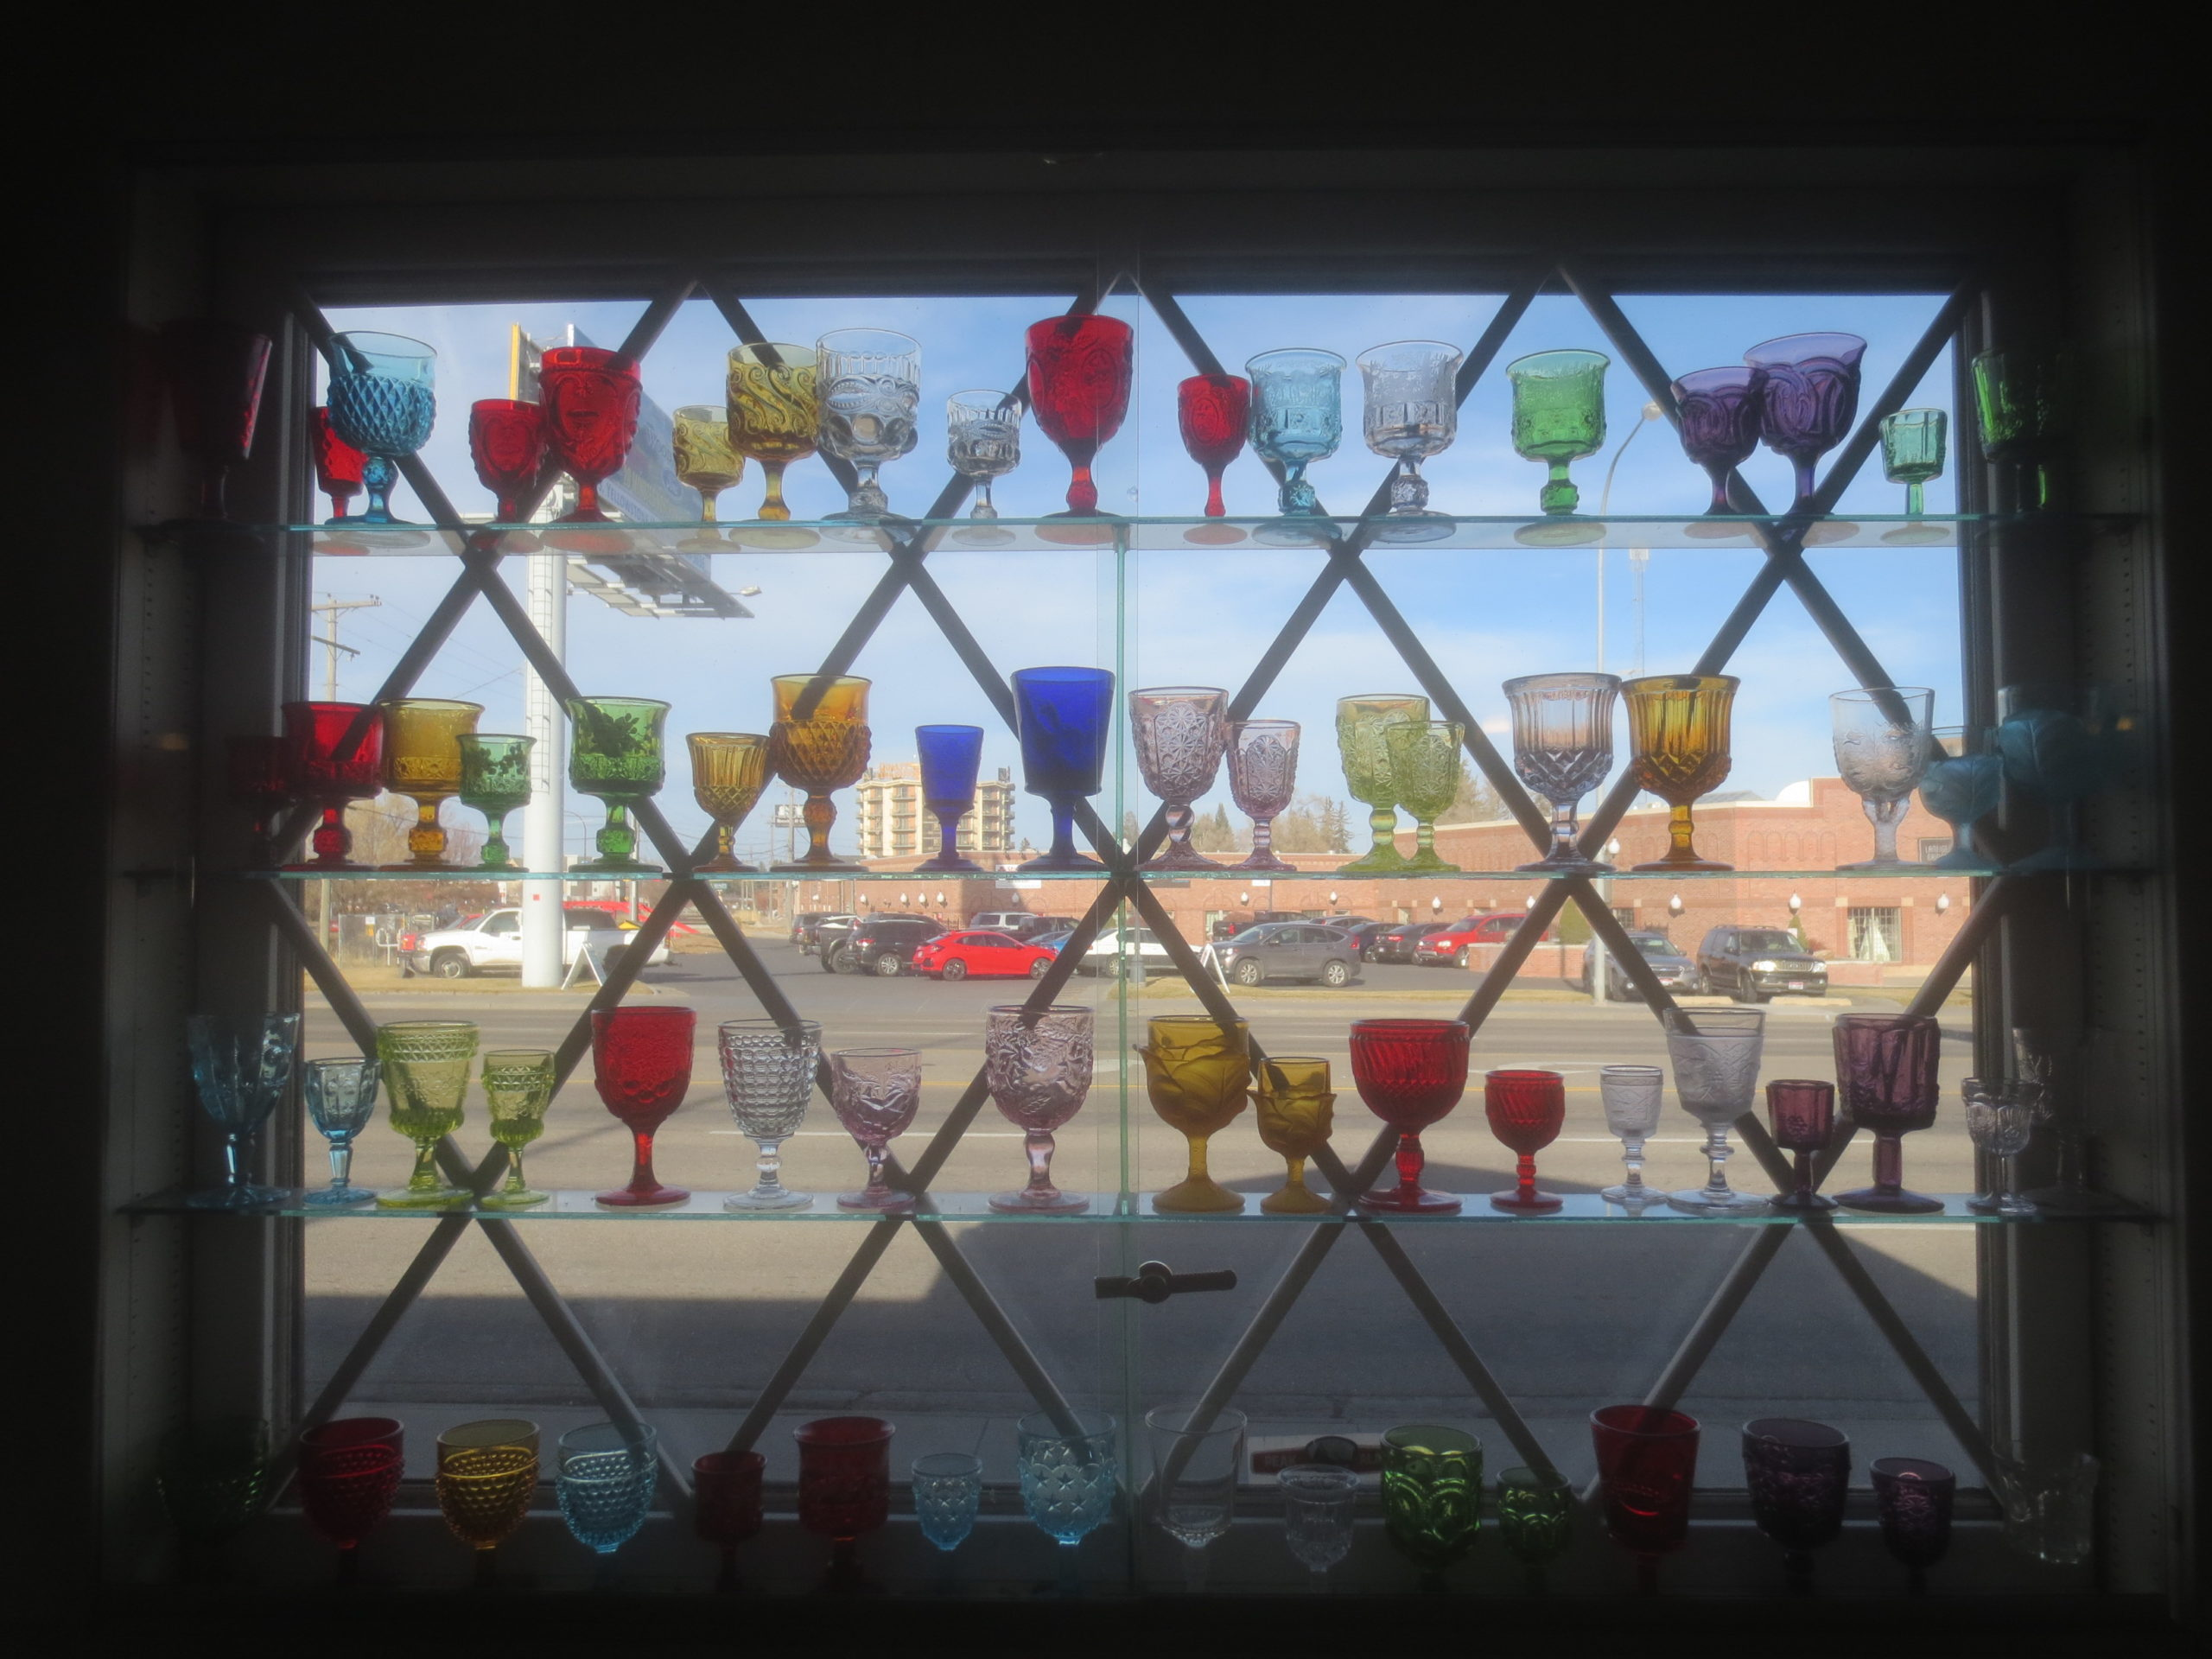 colorful glassware on shelves in front of a window